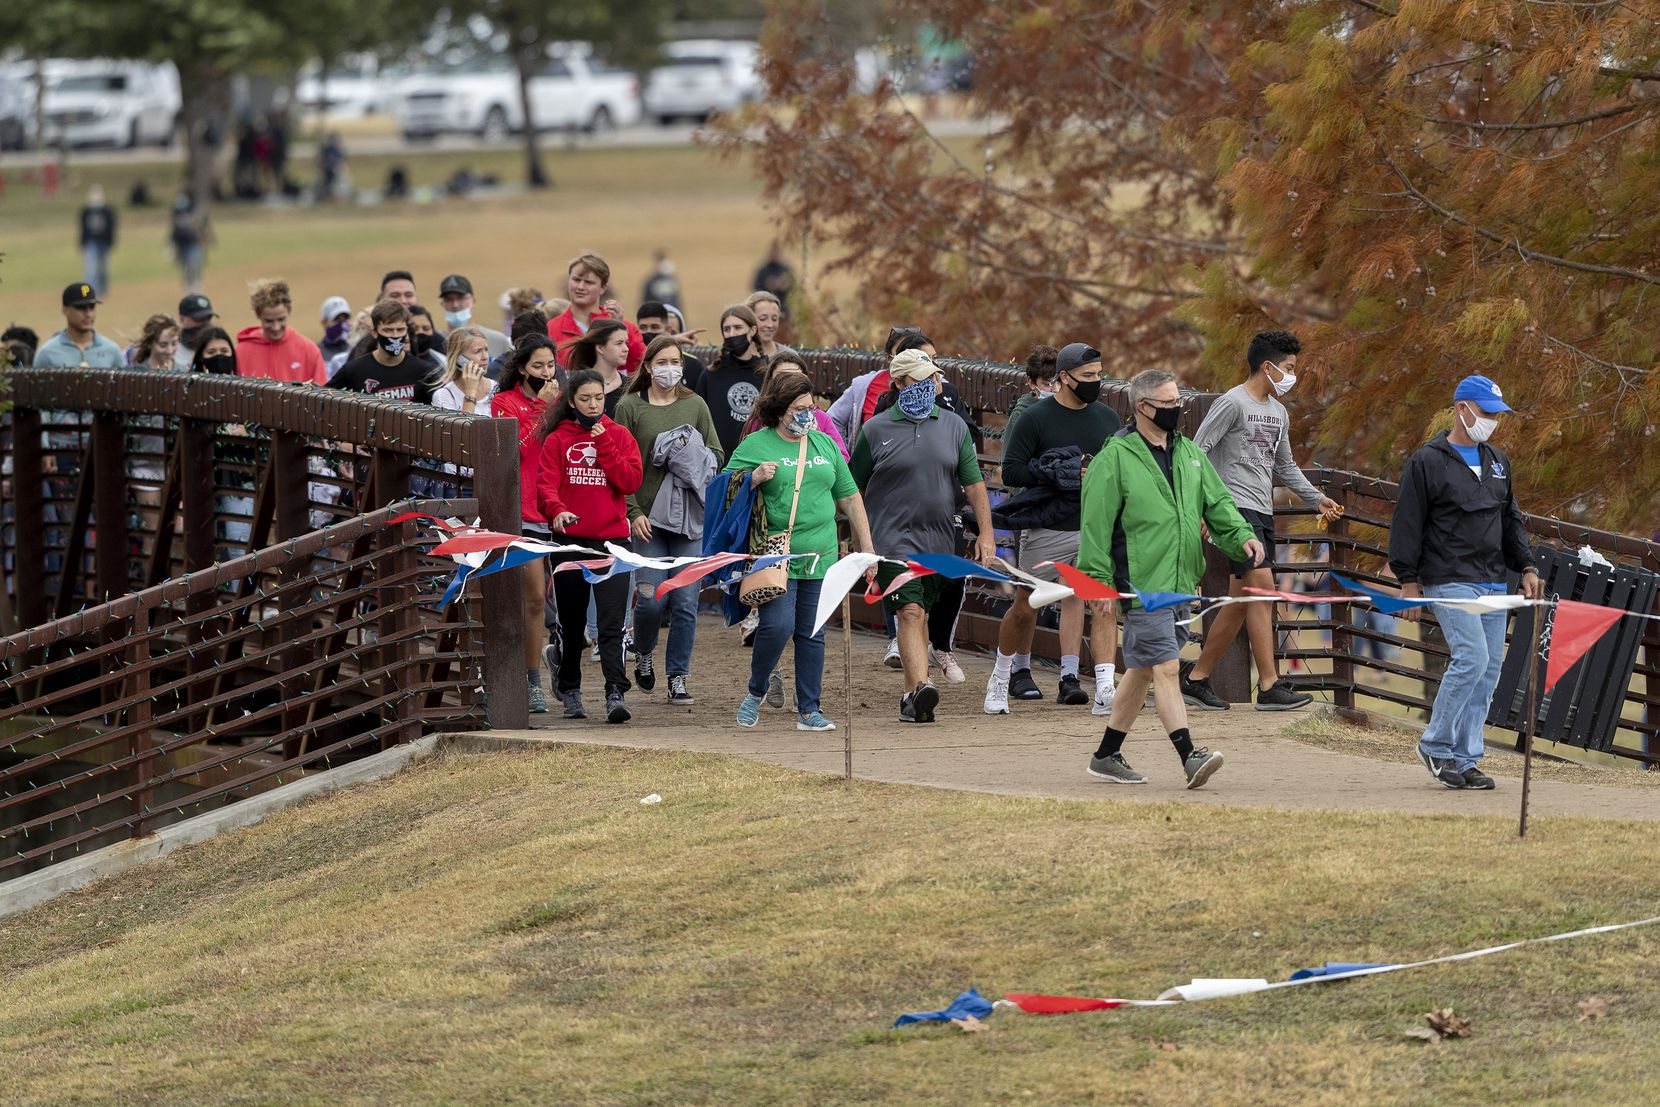 Spectators move through the race course looking for a spot to watch the boys UIL Class 4A state cross country meet in Round Rock, Tuesday, Nov., 24, 2020. (Stephen Spillman/Special Contributor)